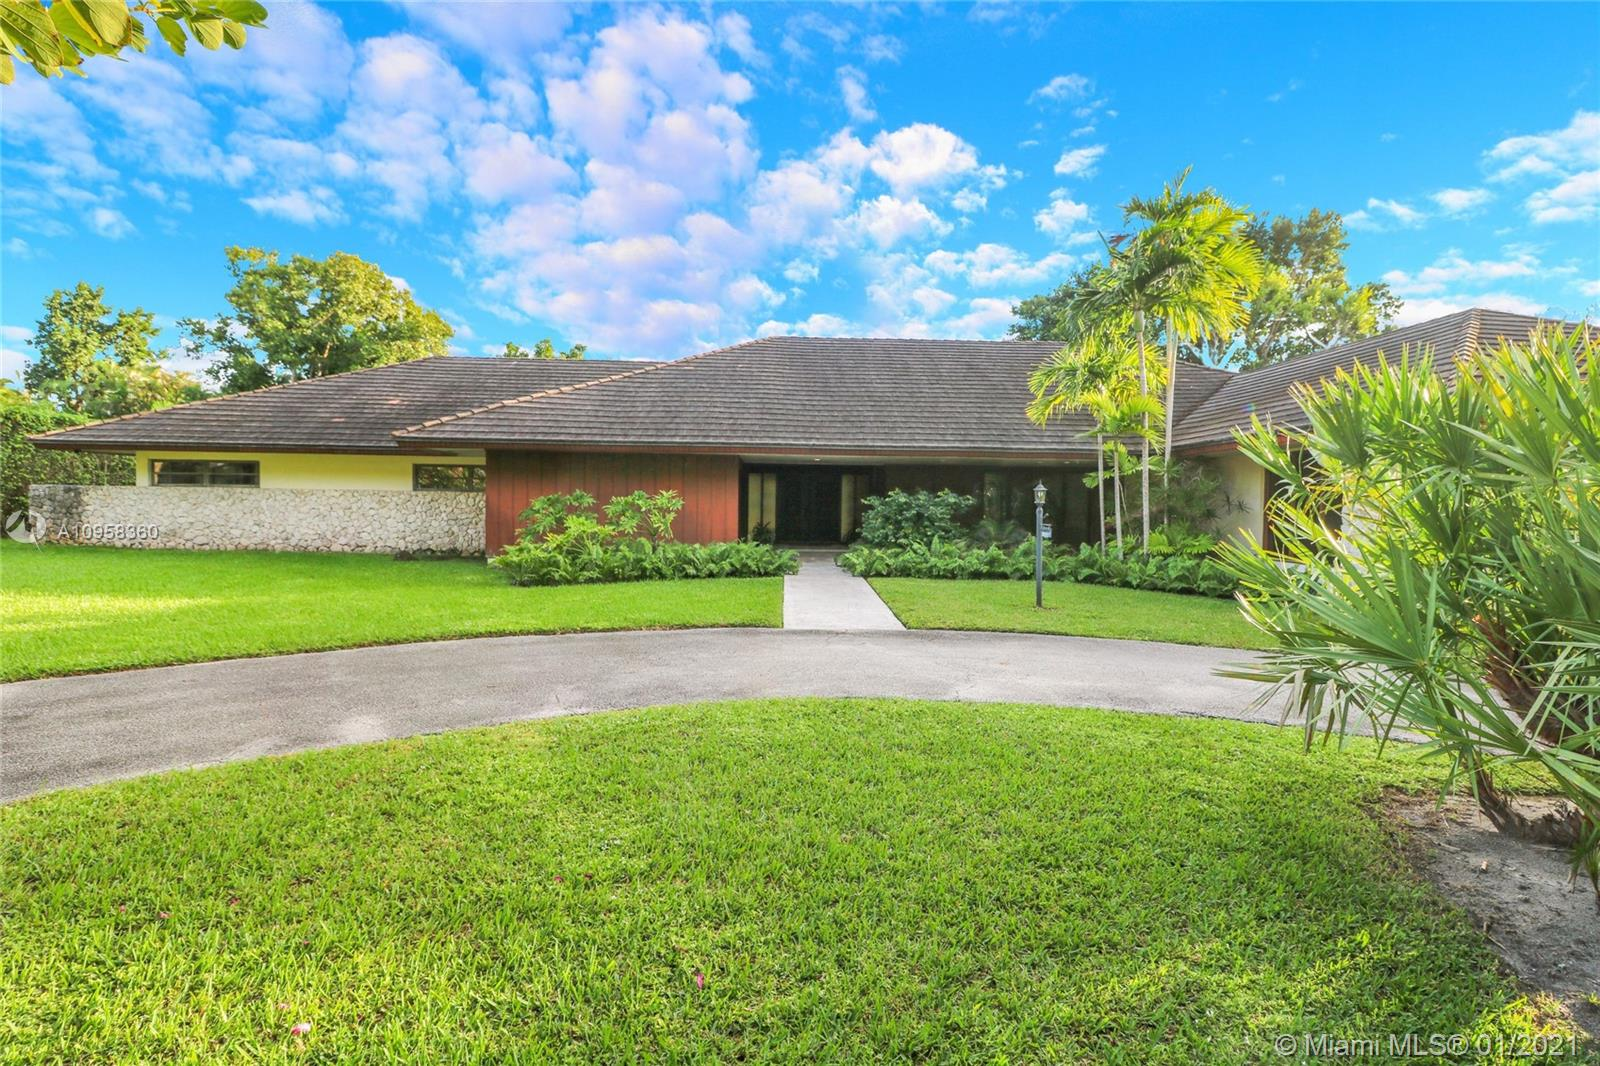 Unique opportunity to own your Coral Gables, Pinecrest-Palmetto school district dream home! This REMODEL-READY 5,283 sqft home w/5 generously-sized bedrooms, 3 ½ baths & oversized 2-car garage sits on ½ acre in prestigious PINE BAY ESTATES CORAL GABLES. This security-patrolled, luxury community is centrally-located at the intersection of tree-lined Red Rd & historic Old Cutler Rd, and is populated with 77 custom-built, multi-million dollar estate homes. The home's unique features include a vaulted great room w/working fireplace, home office/den w/full bath, expansive covered patio & screened pool, deep walk-in closets. The 800 sqft master suite boasts 2 substantial walk-in closets, dressing room w/2 separate vanities, marble bathroom w/sunken tub overlooking a private walled garden.